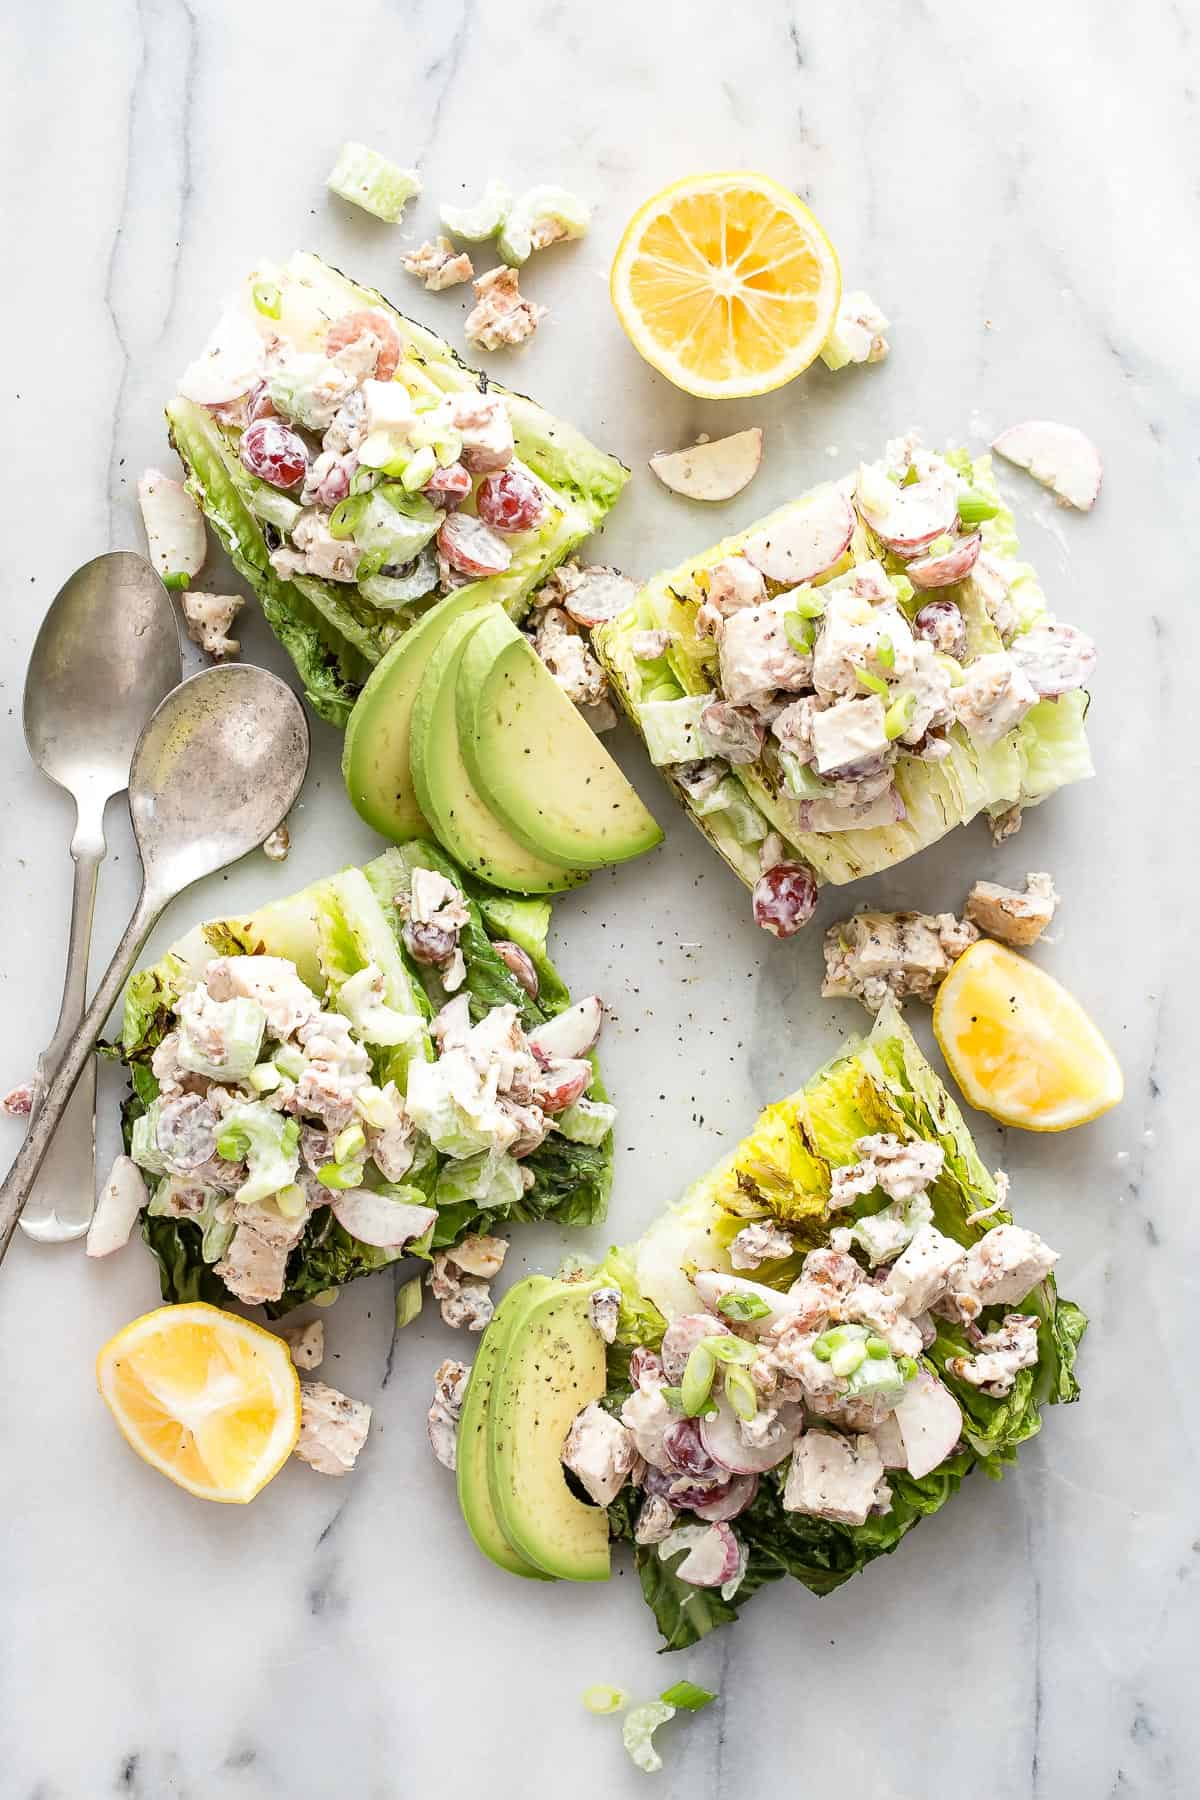 Chicken Salad on Grilled Romaine Lettuce